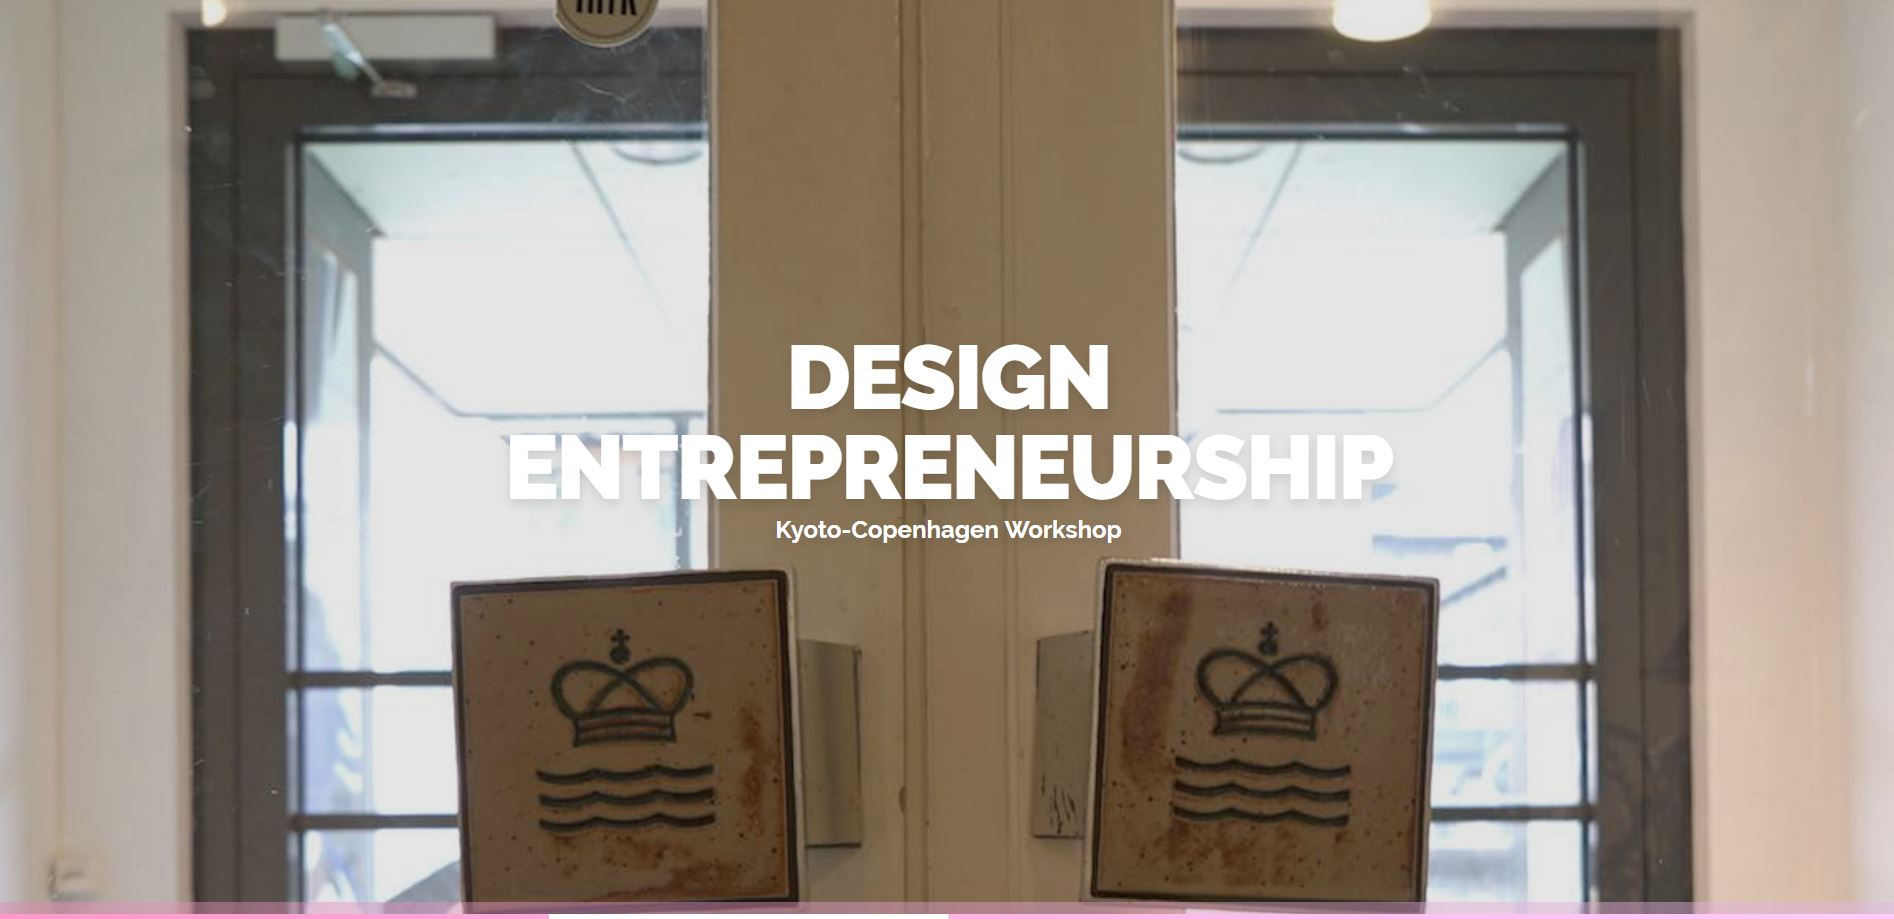 Design Entrepreneurship